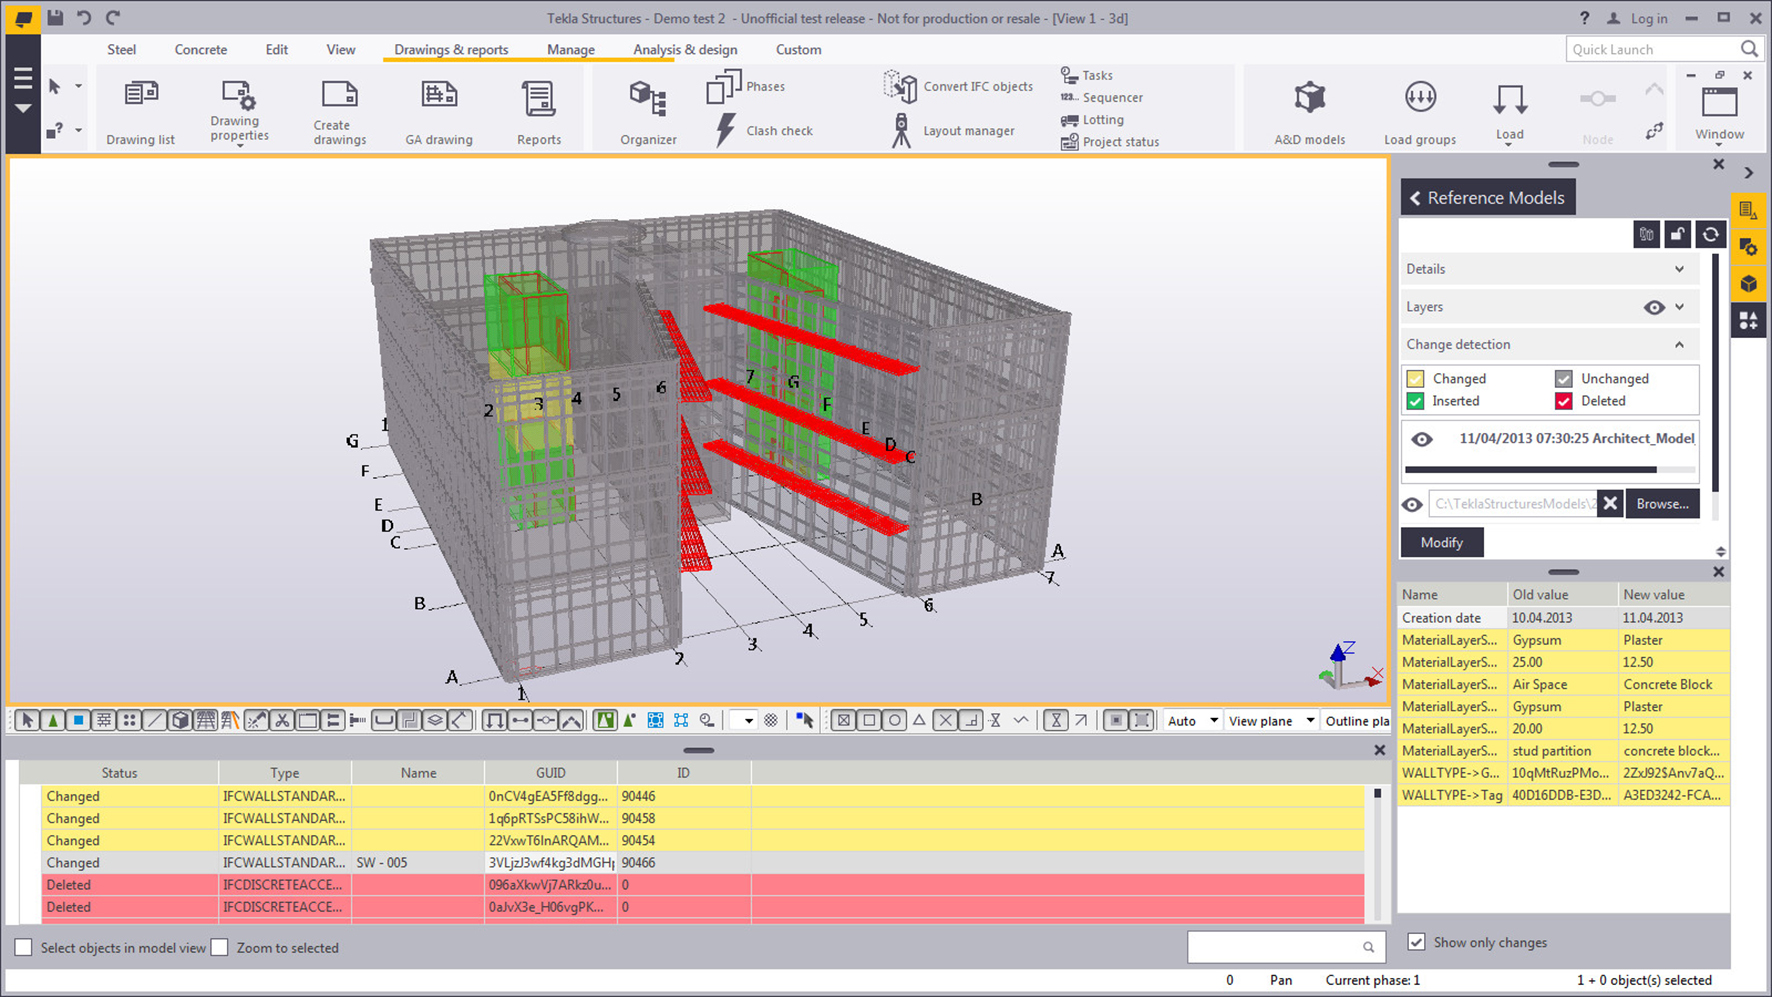 3 New Releases for Tekla Users > ENGINEERING com